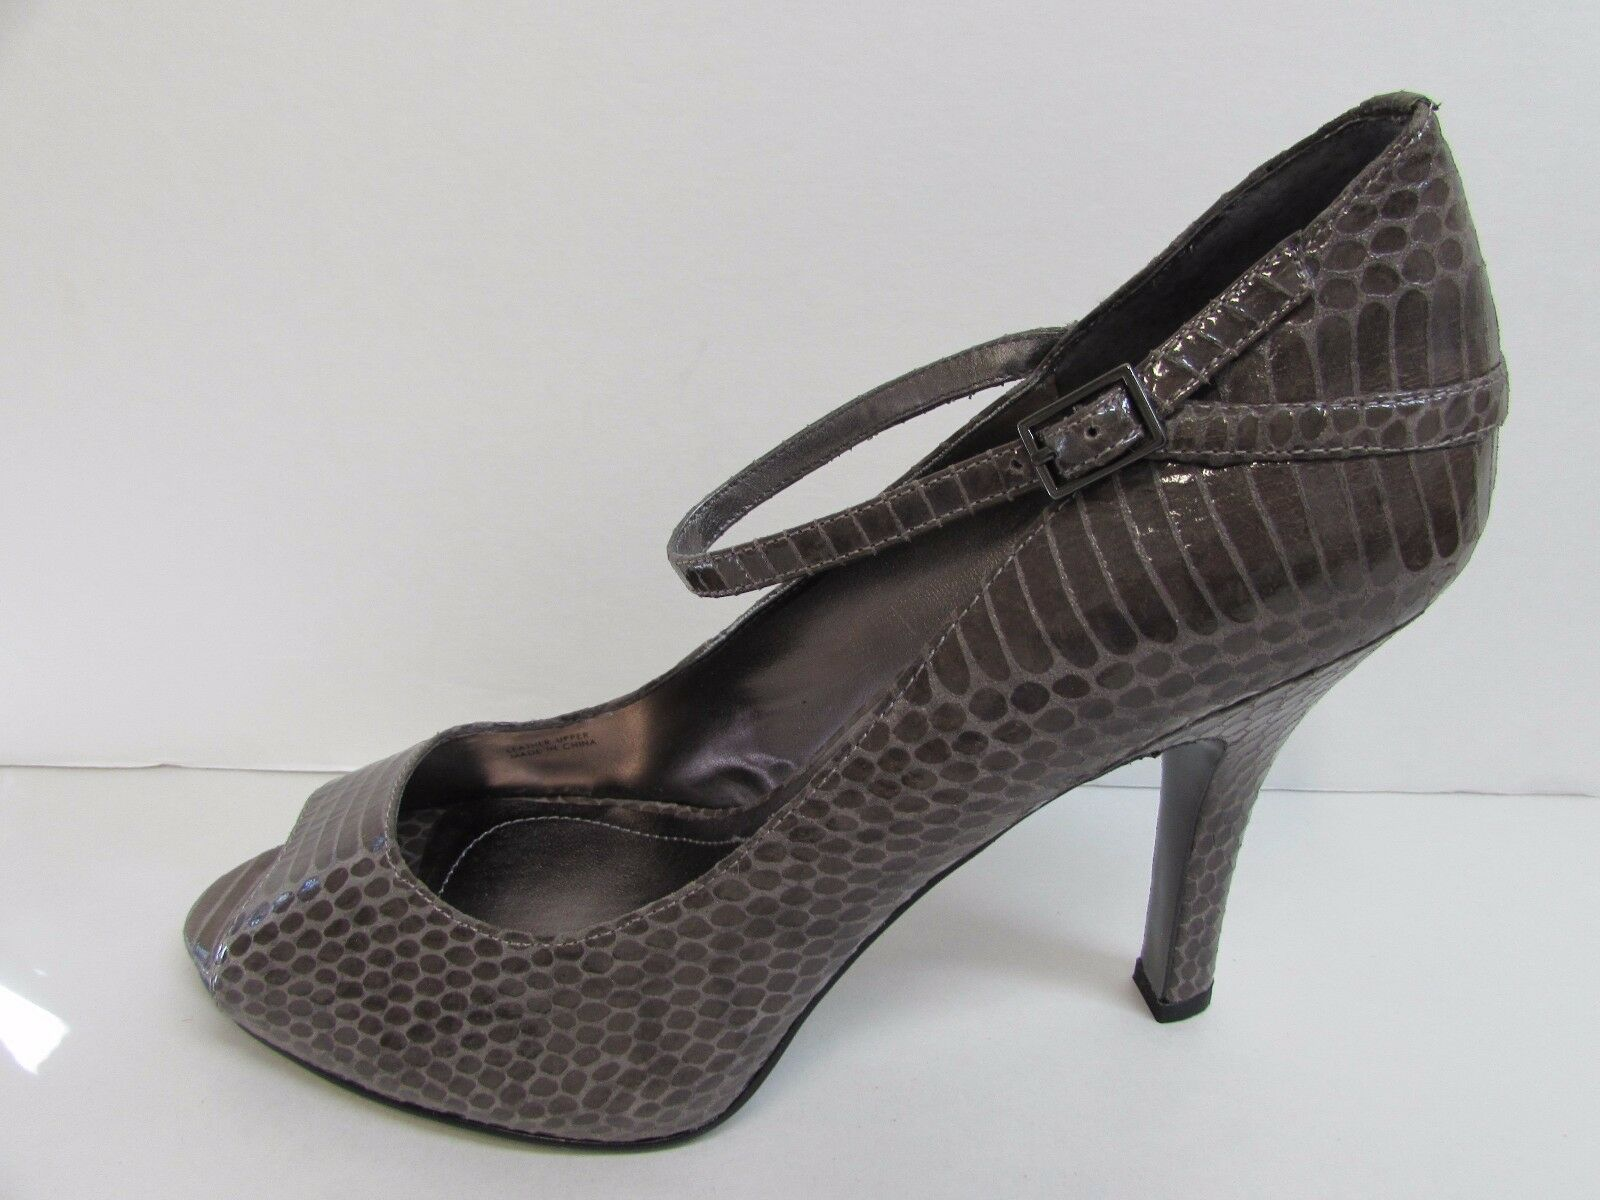 Tahari Heels Größe 10 braun Leather High Heels Tahari New damen schuhe 1bebb1